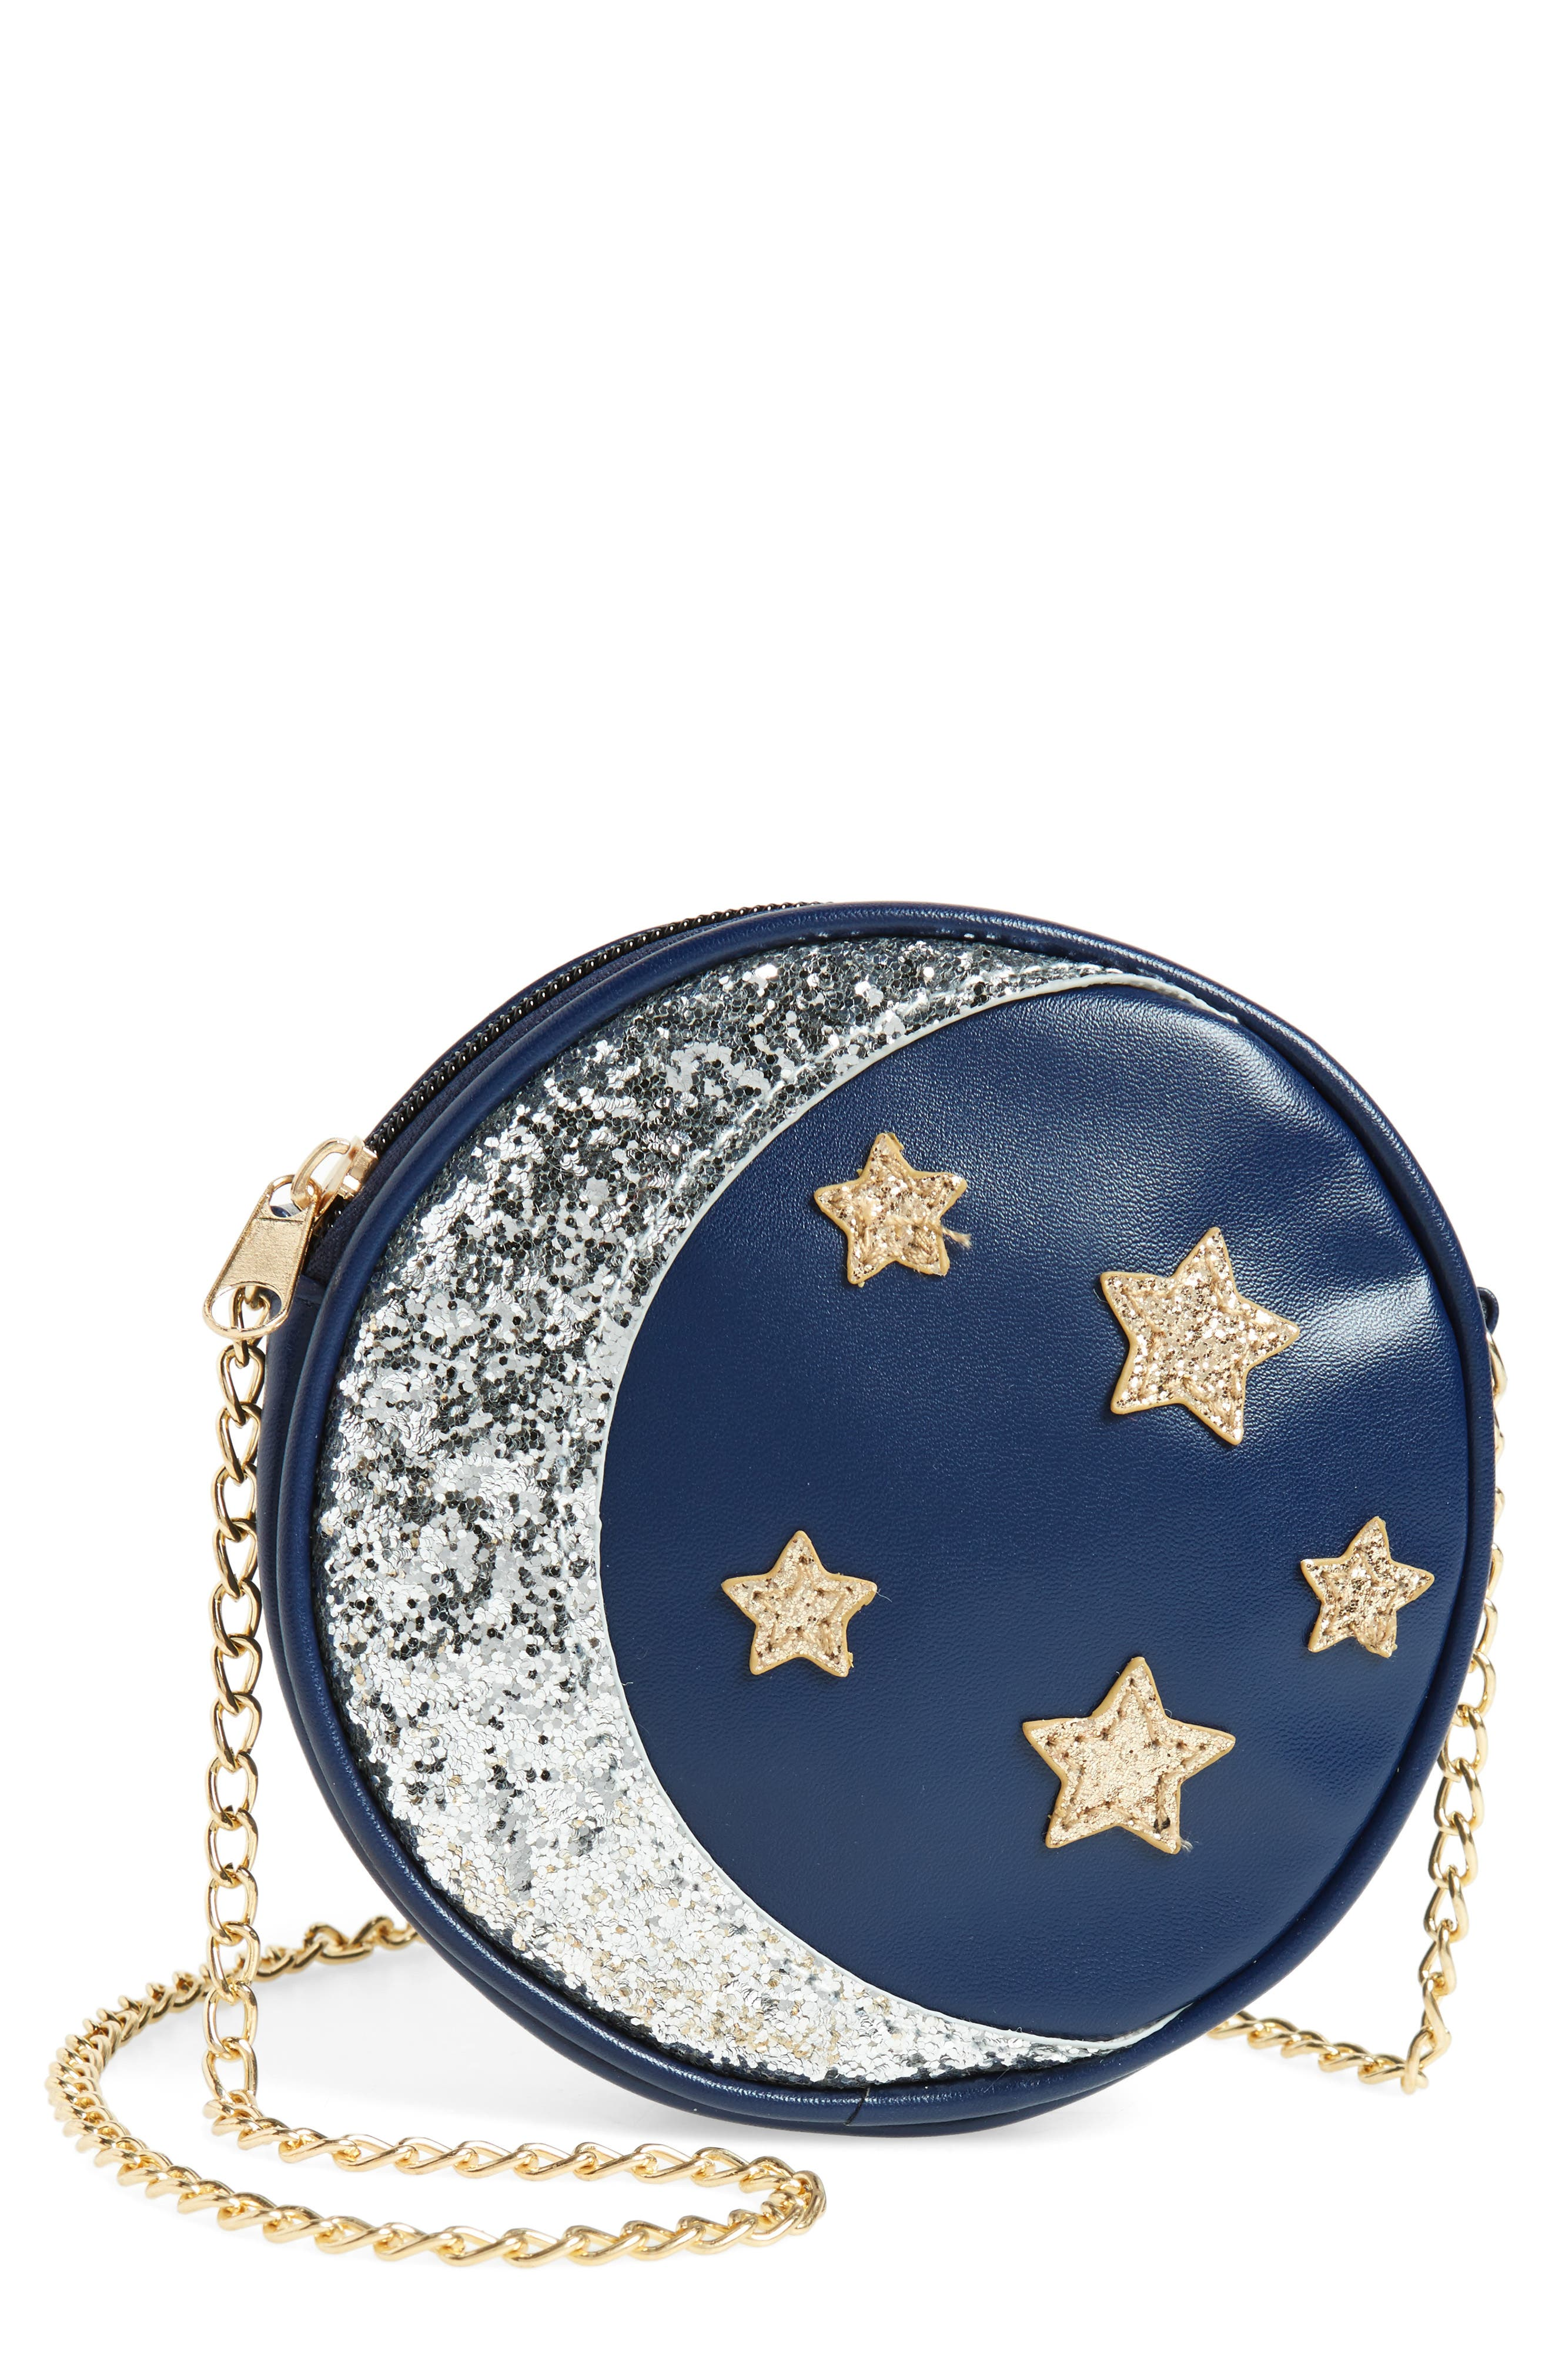 CAPELLI OF NEW YORK Sequin Stars & Moon Bag